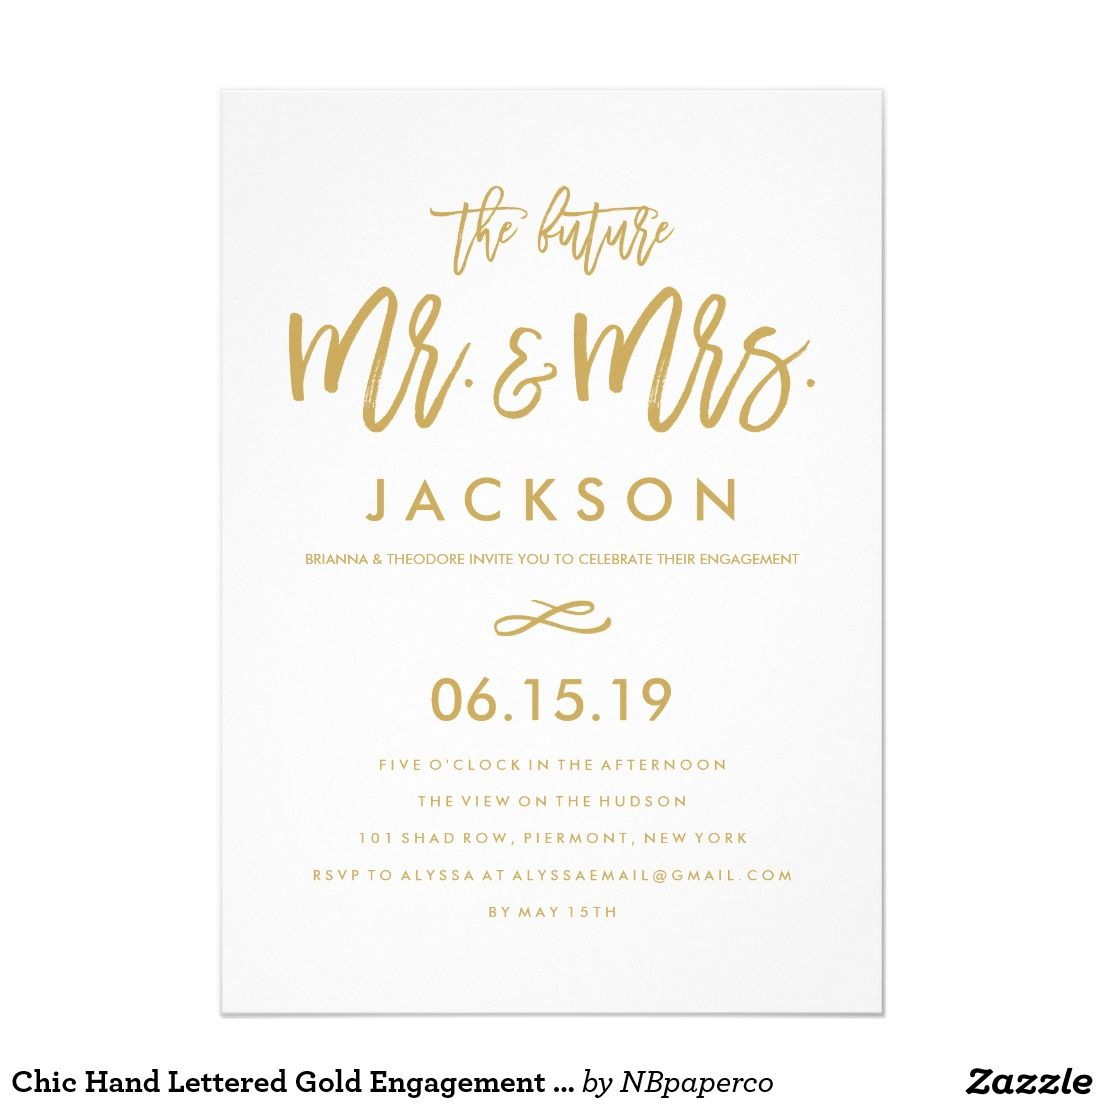 Chic Hand Lettered Gold Engagement Party | Modern Wedding ...